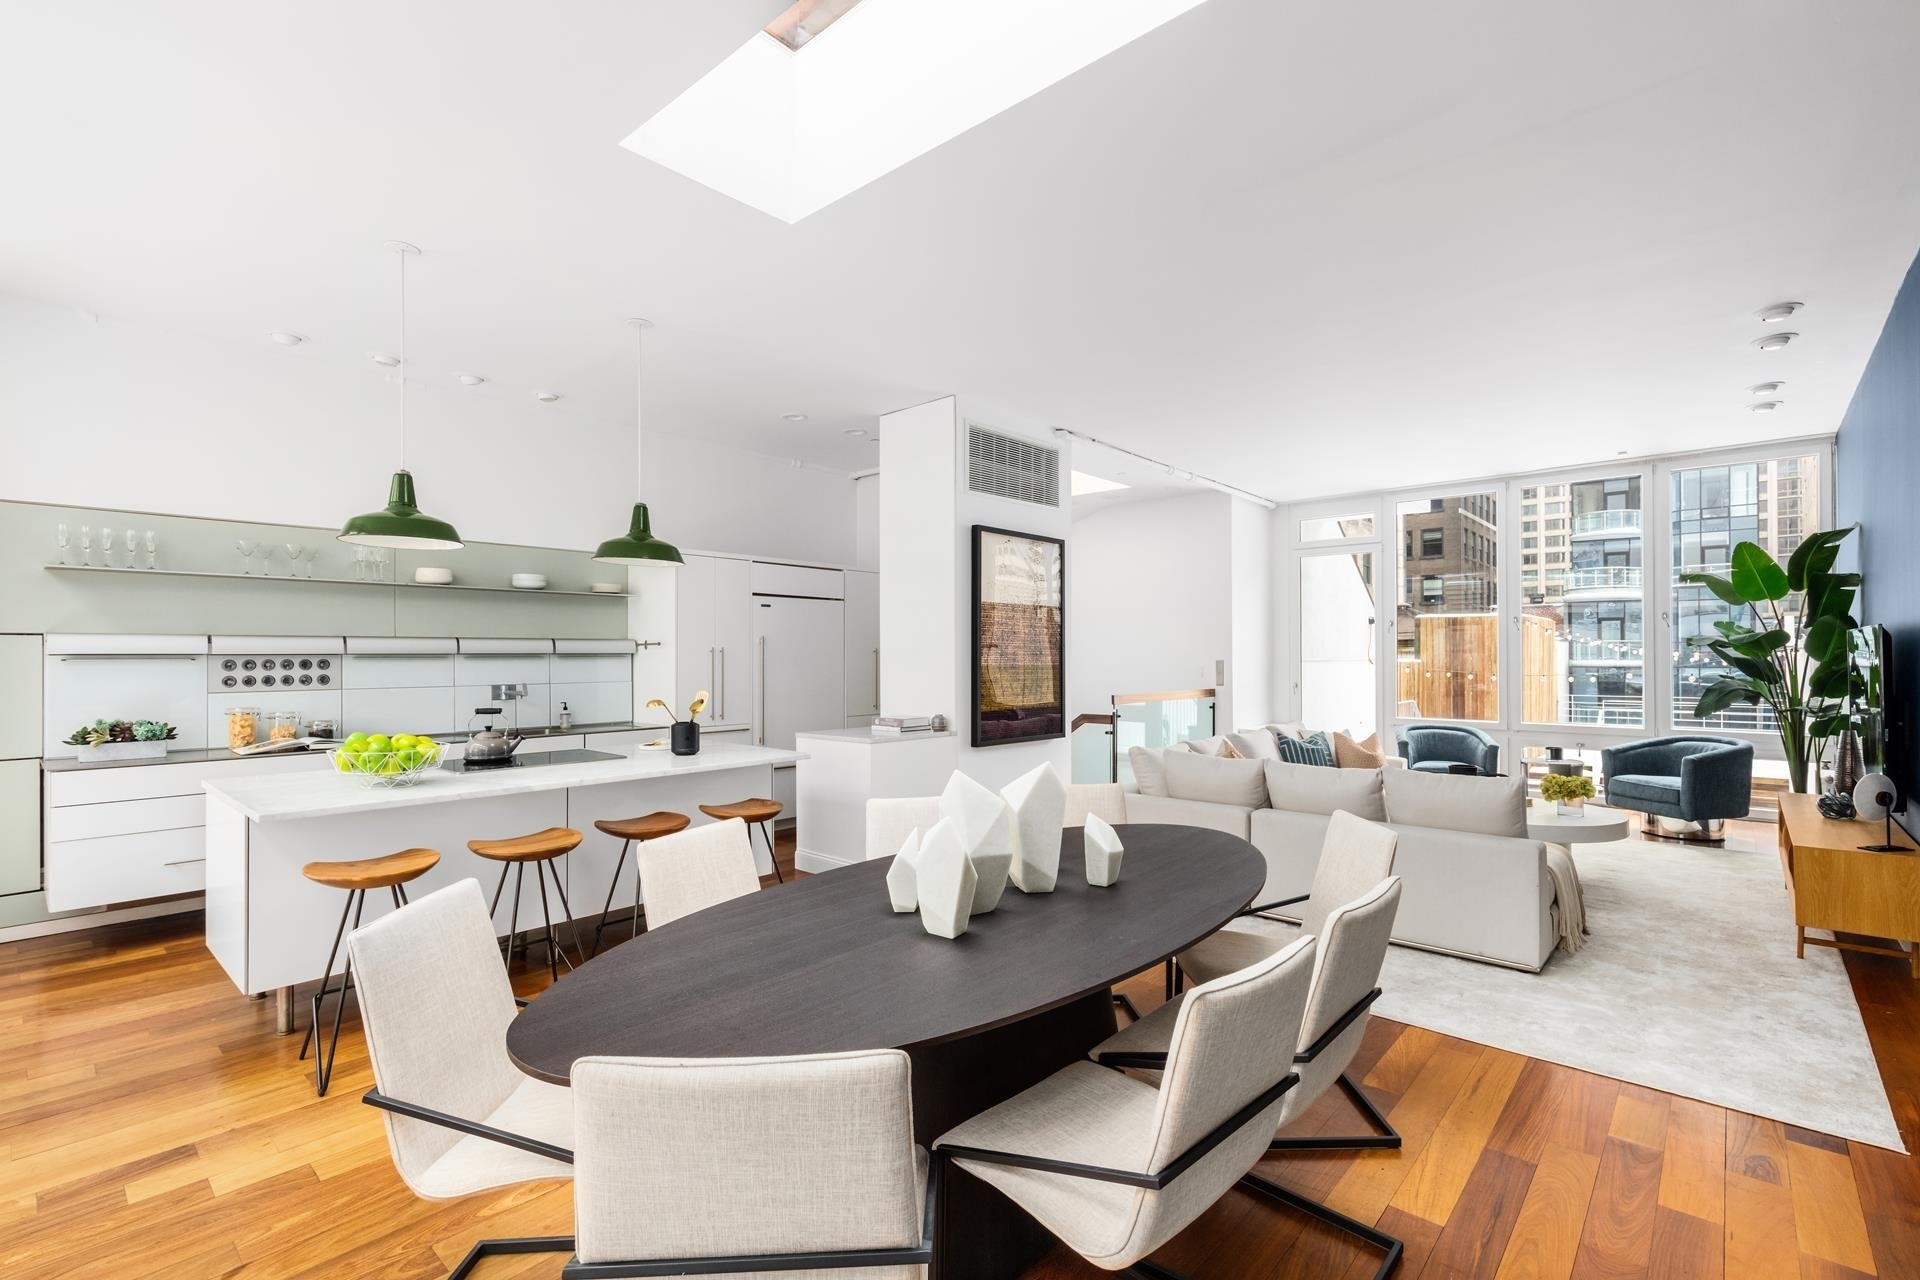 Property at 19 MURRAY ST , PH Upper East Side, New York, NY 10007